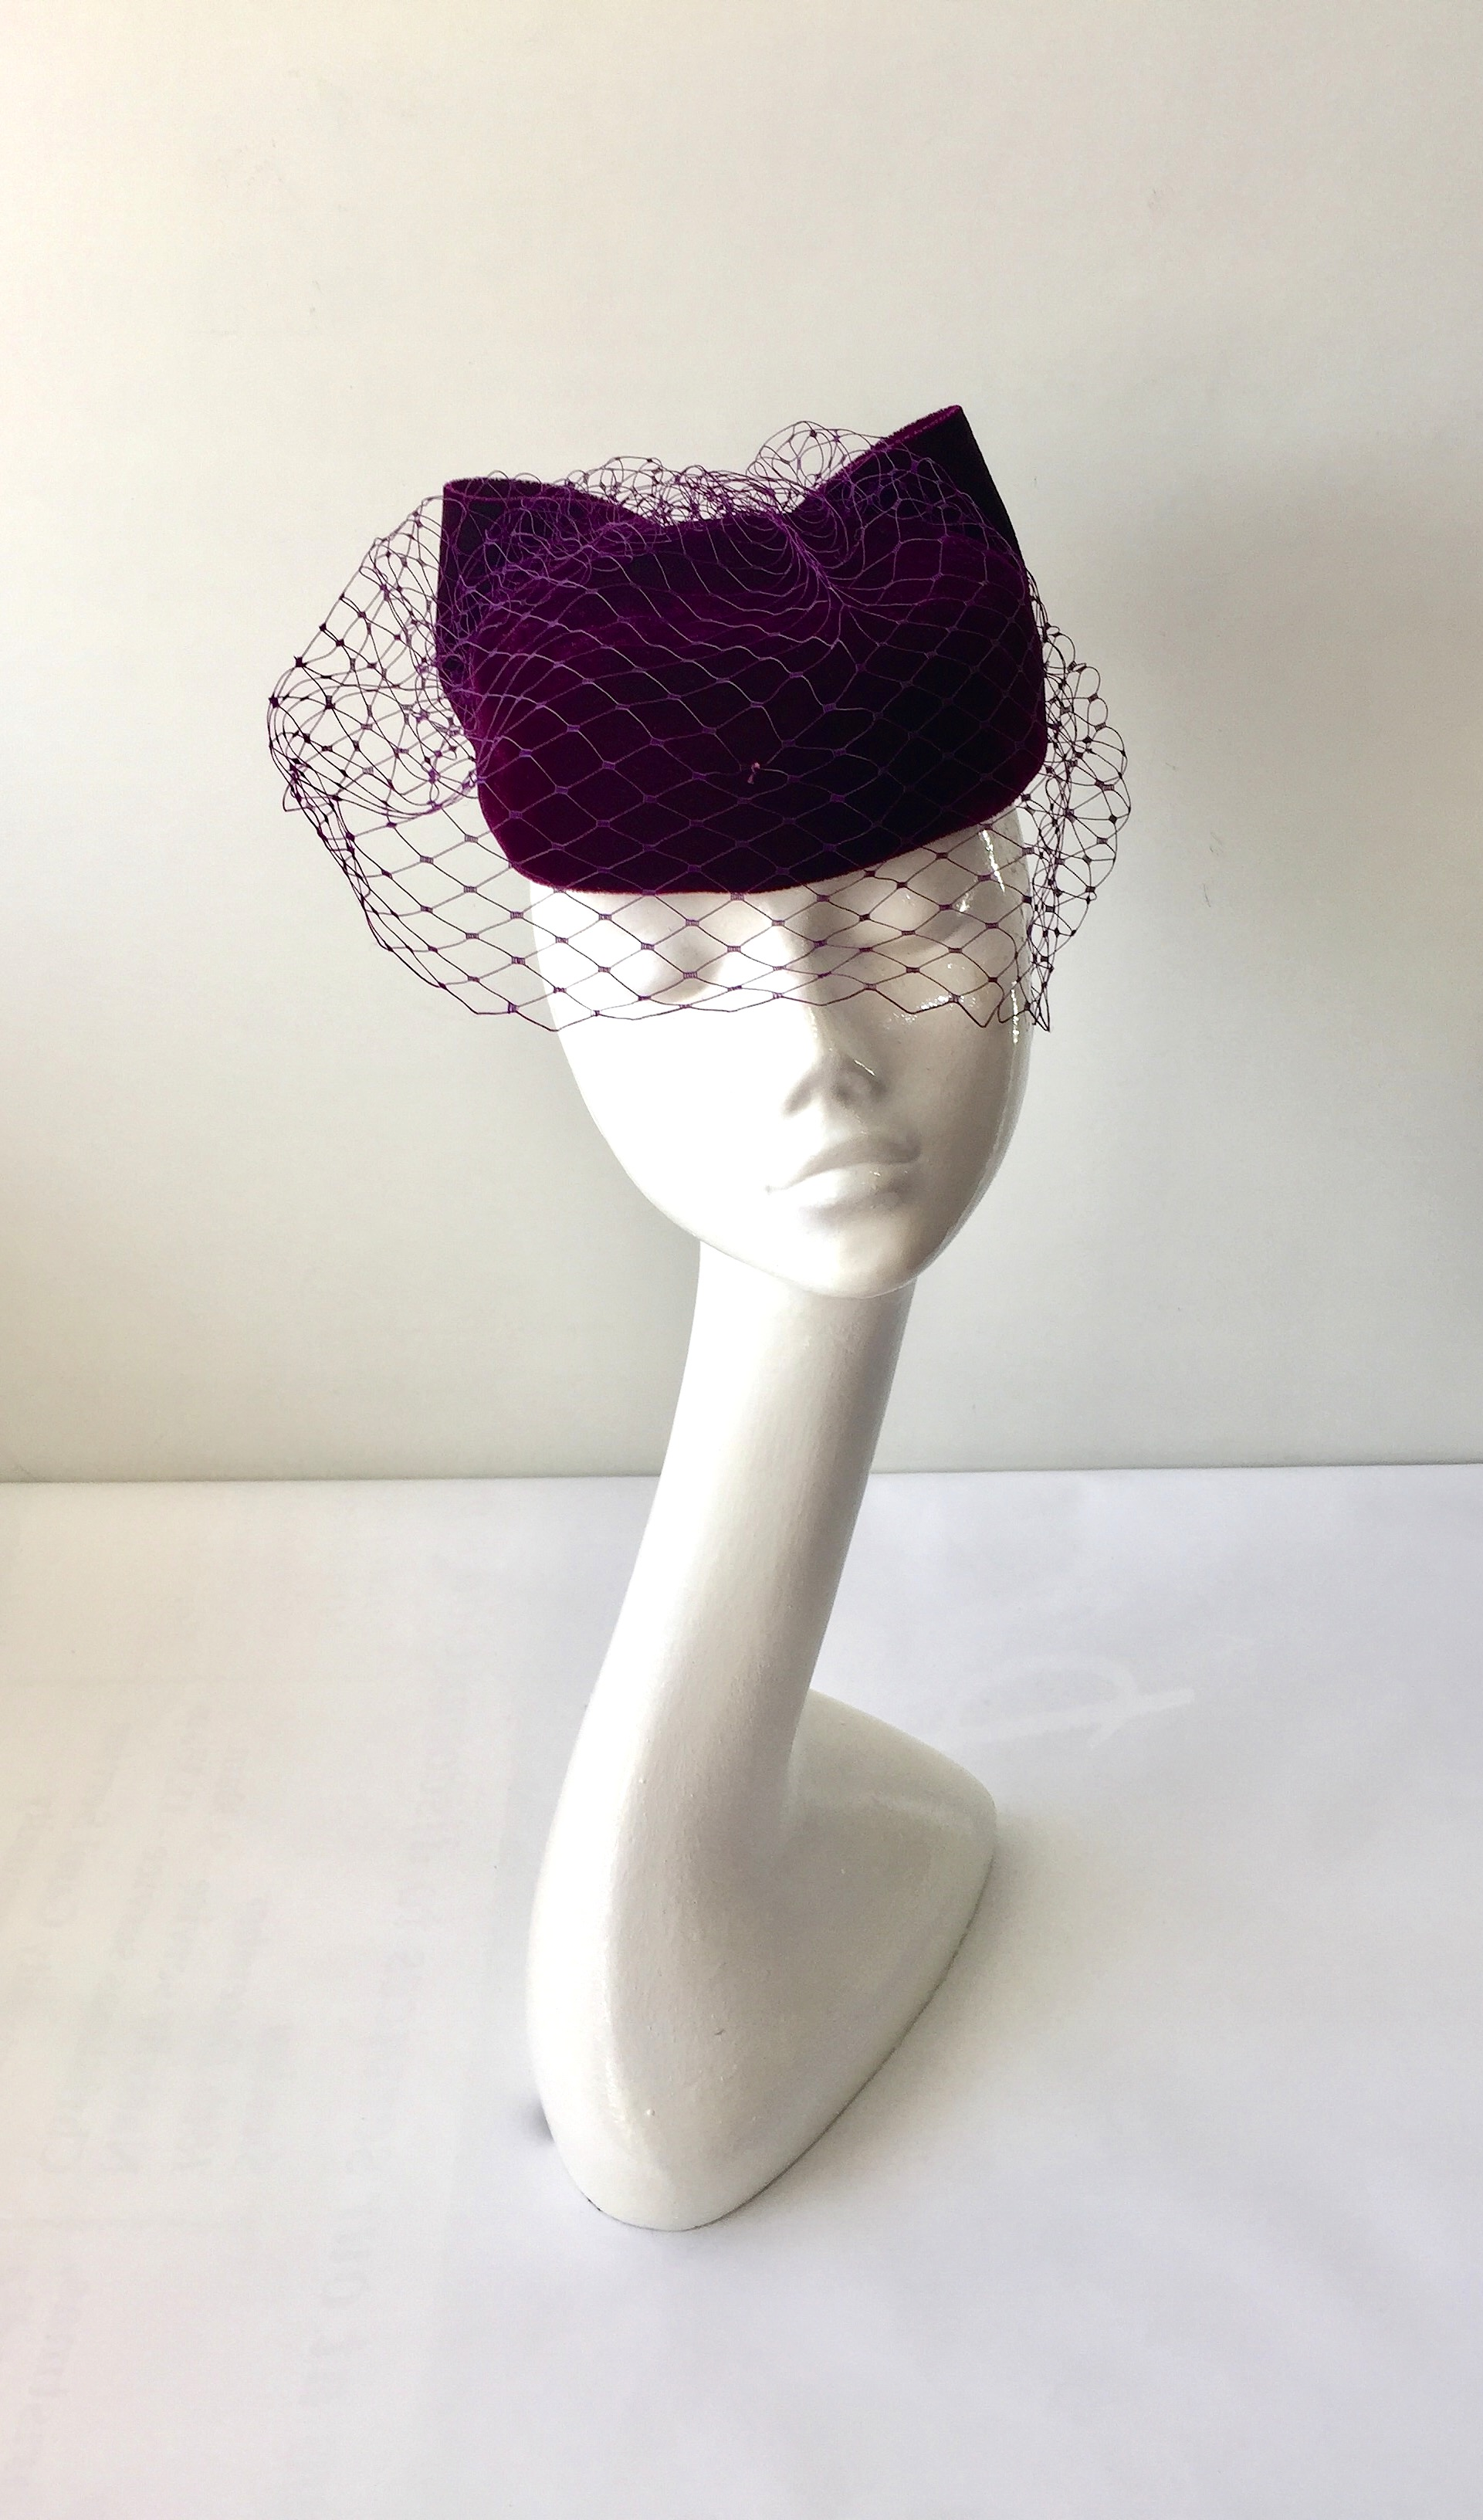 Blackcurrant velvet pillbox hat with merry widow veiling and velvet bow  trim. With hat elastic for a secure fit. ef8bdc12831